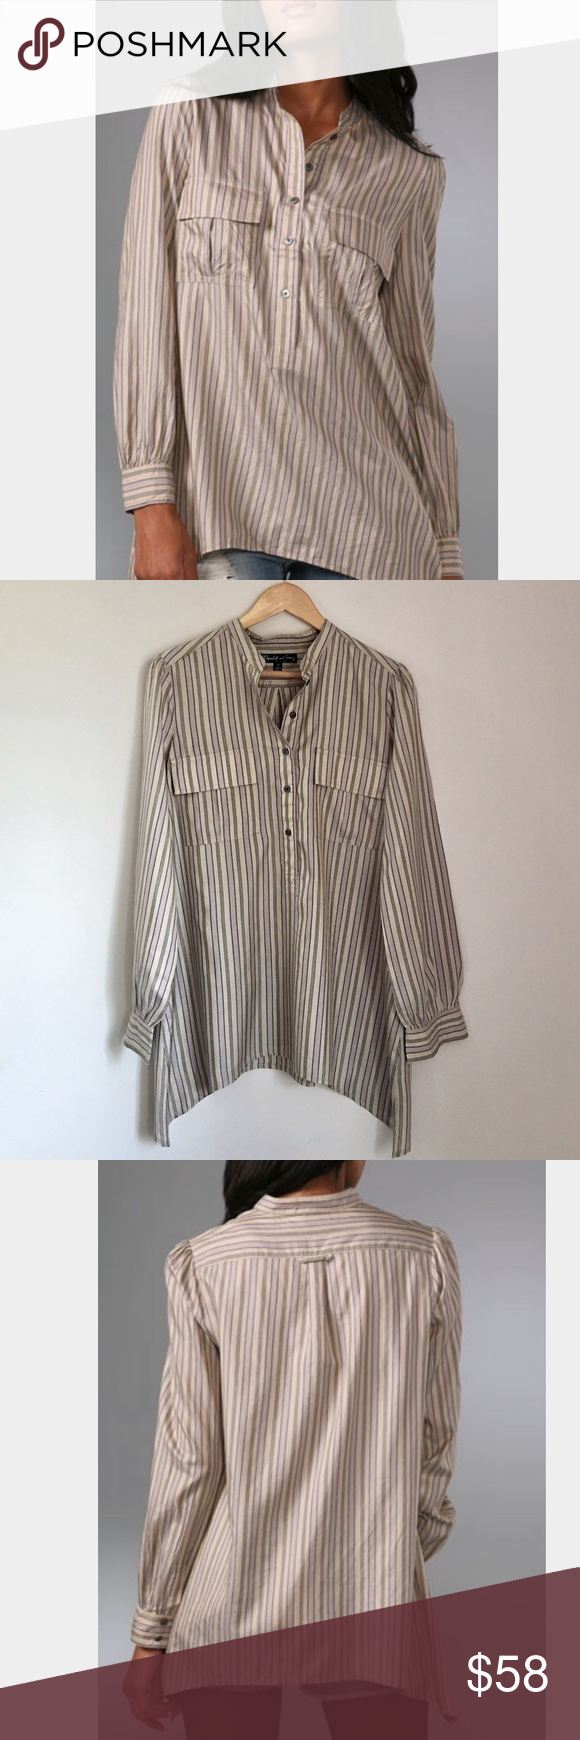 21f9b7d12c749e Elizabeth and James Silk Striped Tunic RARE Elizabeth and James silk  popover tunic. Beige gray green stripe. Button front. Two flap chest  pockets.